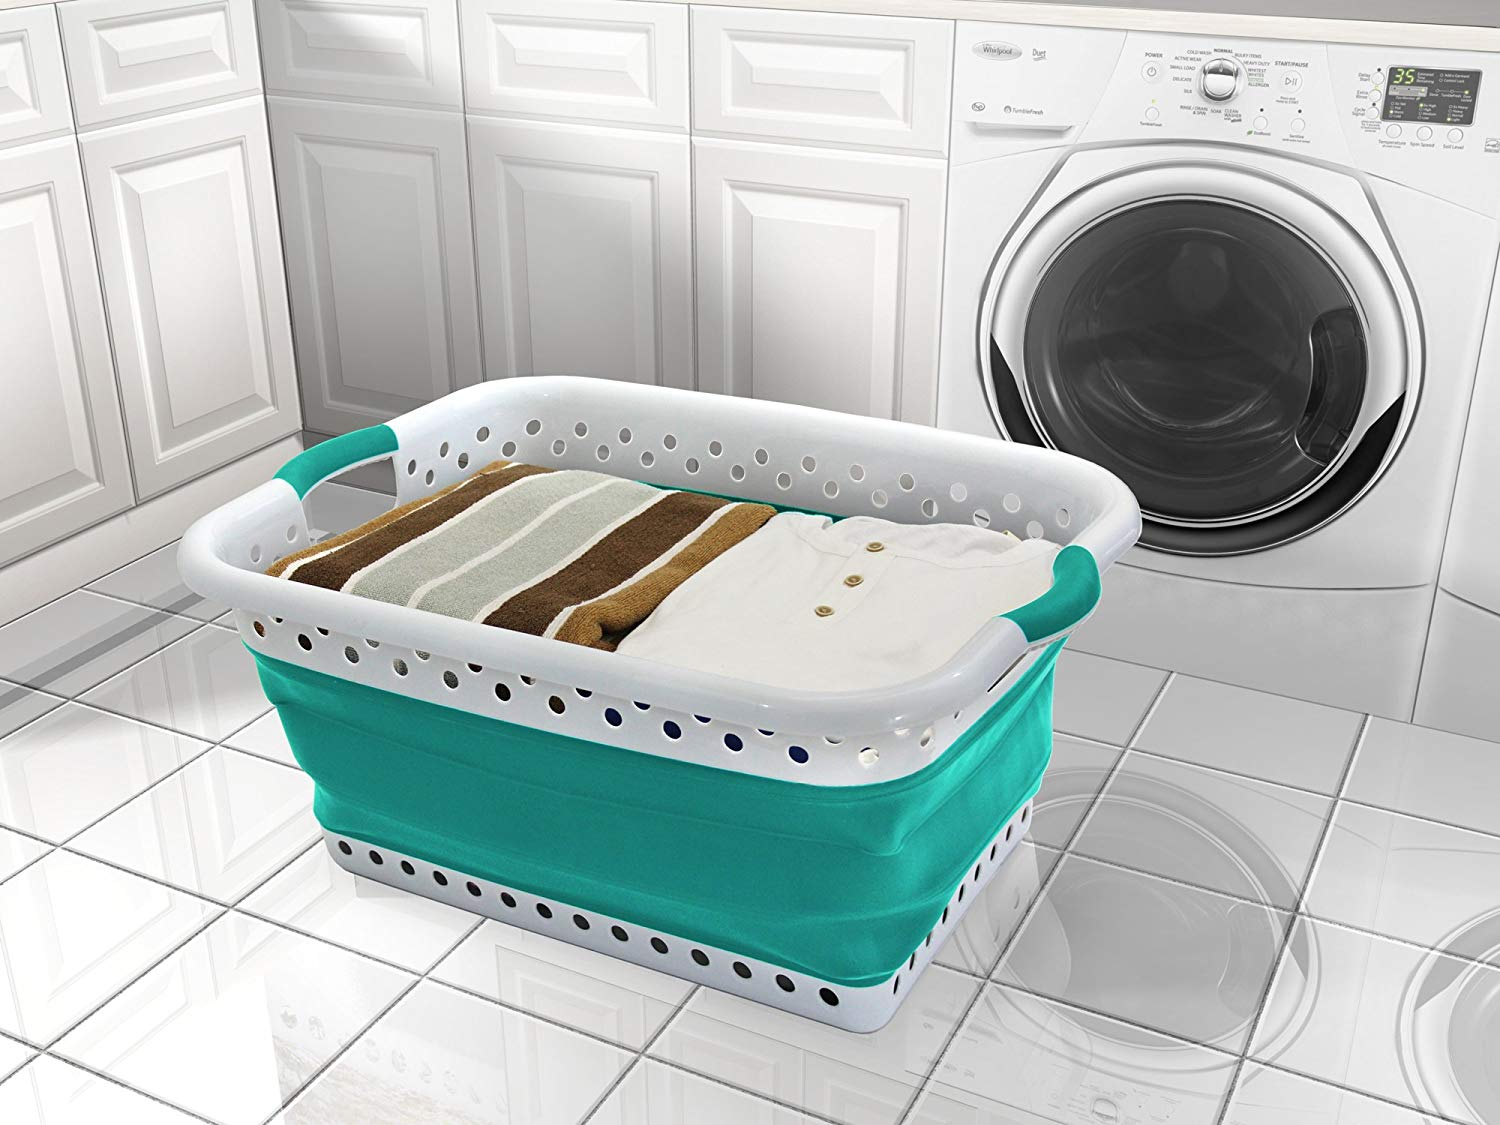 "Collapsible Laundry Basket Large Capacity In Teal/White; Pop & Load Pop & Load Collection Made With Silicone Basket Which Collapses To 3"" High; Dimensions: 11"" (H) 18"" (W) 25"" (L) Fully Expanded"